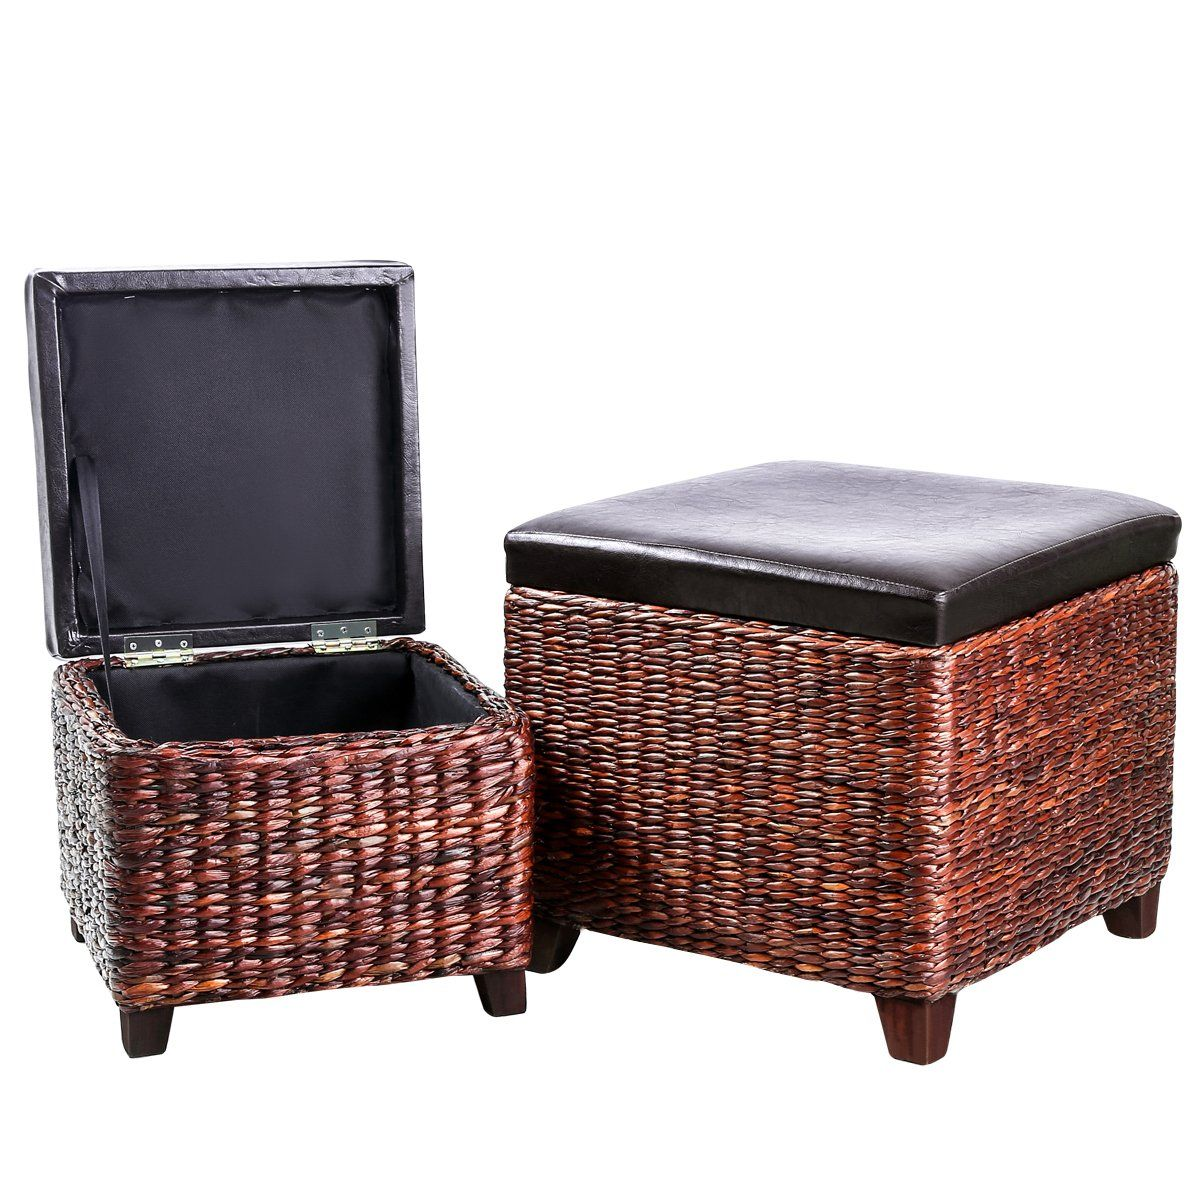 Eshow Ottoman Rattan Ottoman With Storage Hassocks And Ottomans Foot Rest Pouf Ottoman Foot St Storage Ottoman Living Room Storage Luxury Furniture Living Room